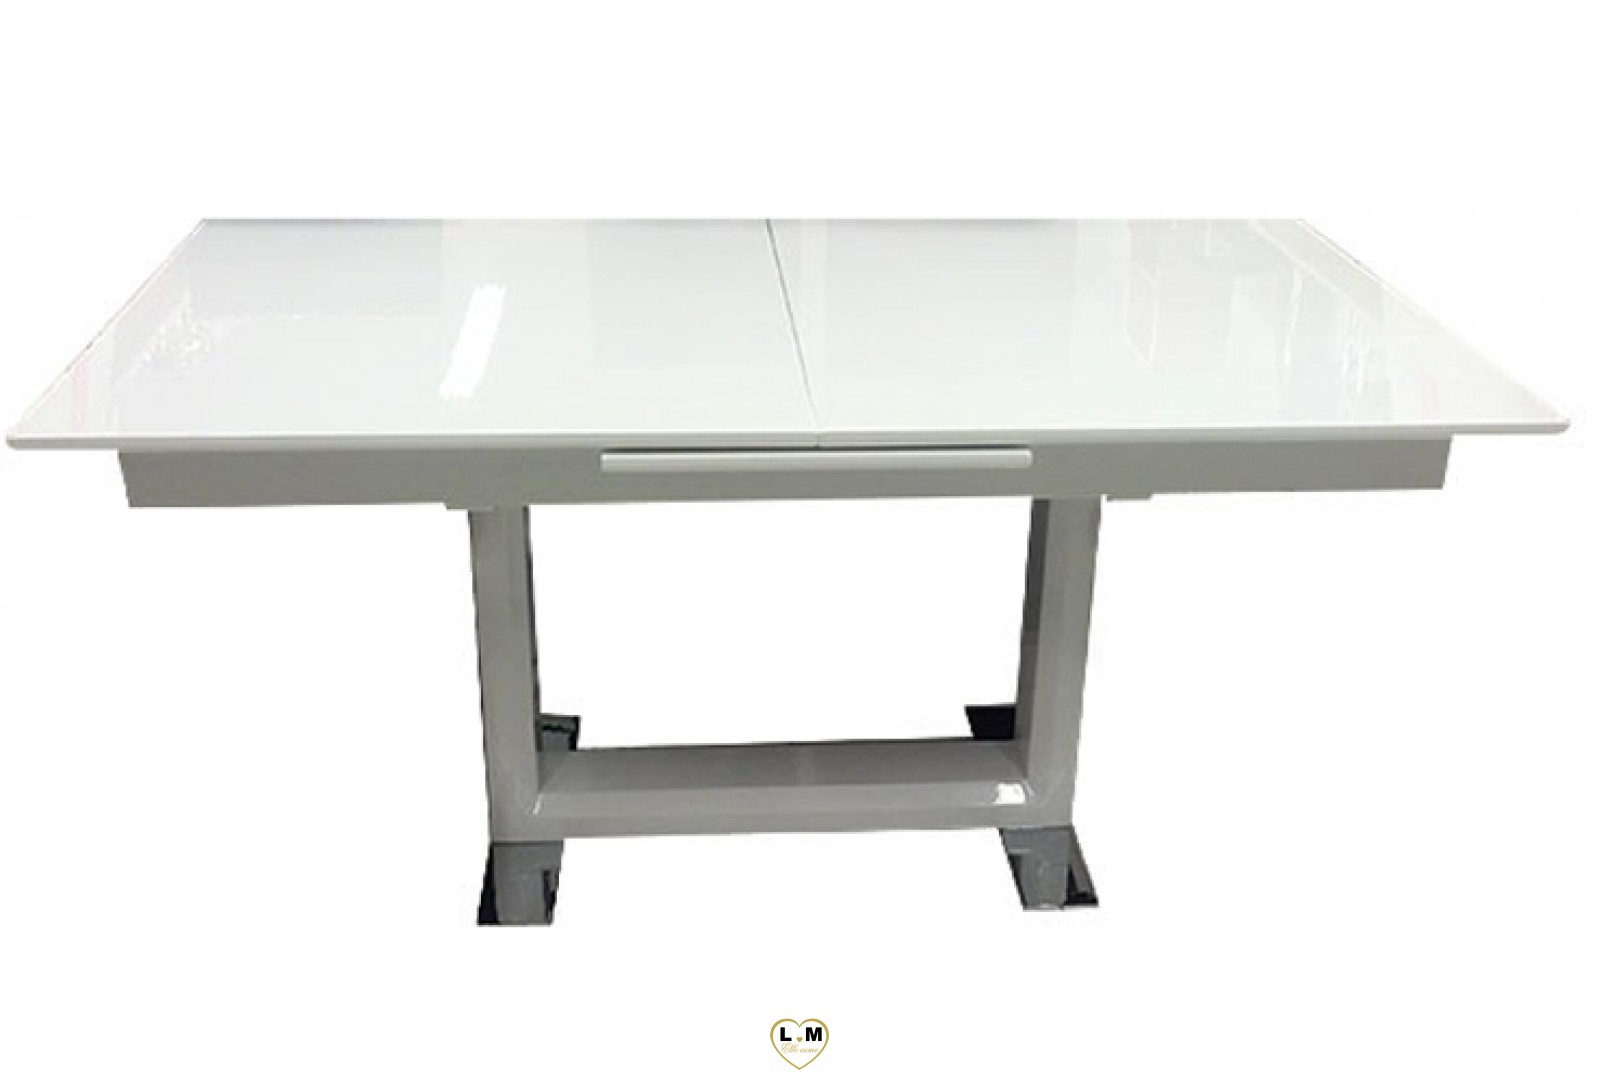 t11b table allonge salle a manger laque blanc lignemeuble com. Black Bedroom Furniture Sets. Home Design Ideas